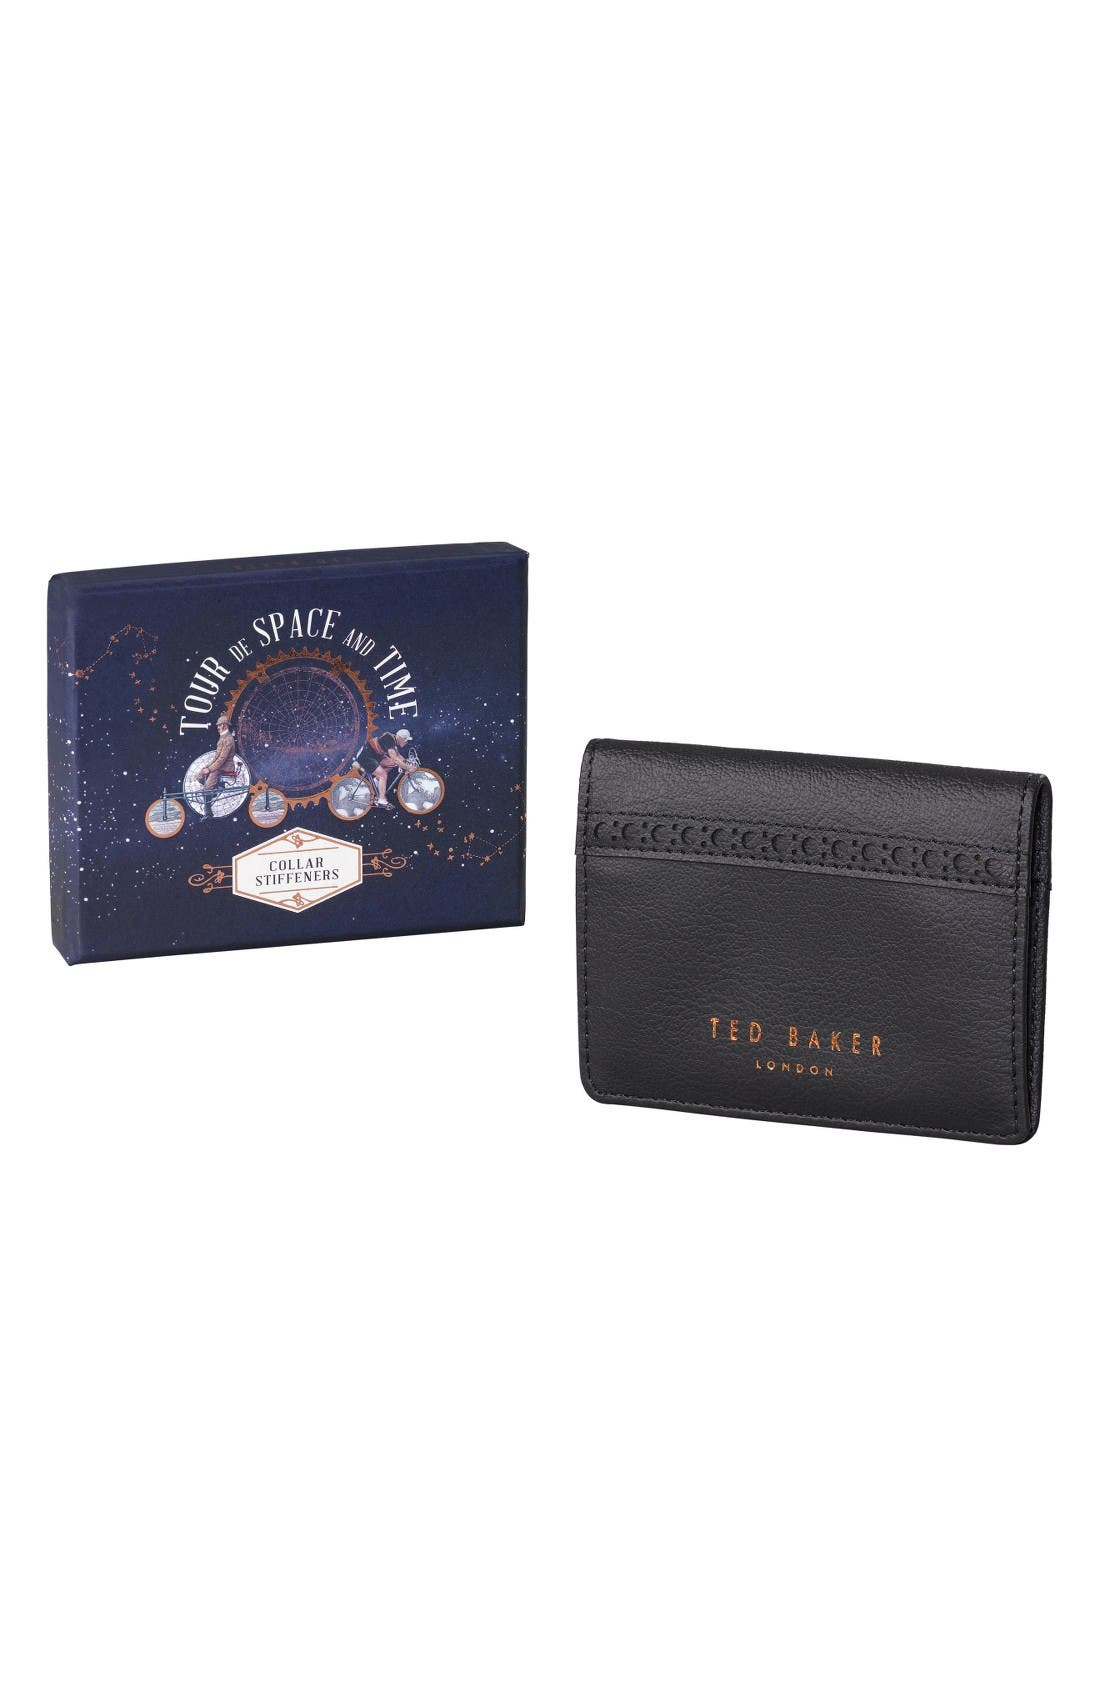 Ted Baker London Set of 6 Collar Stays in Brogued Pouch